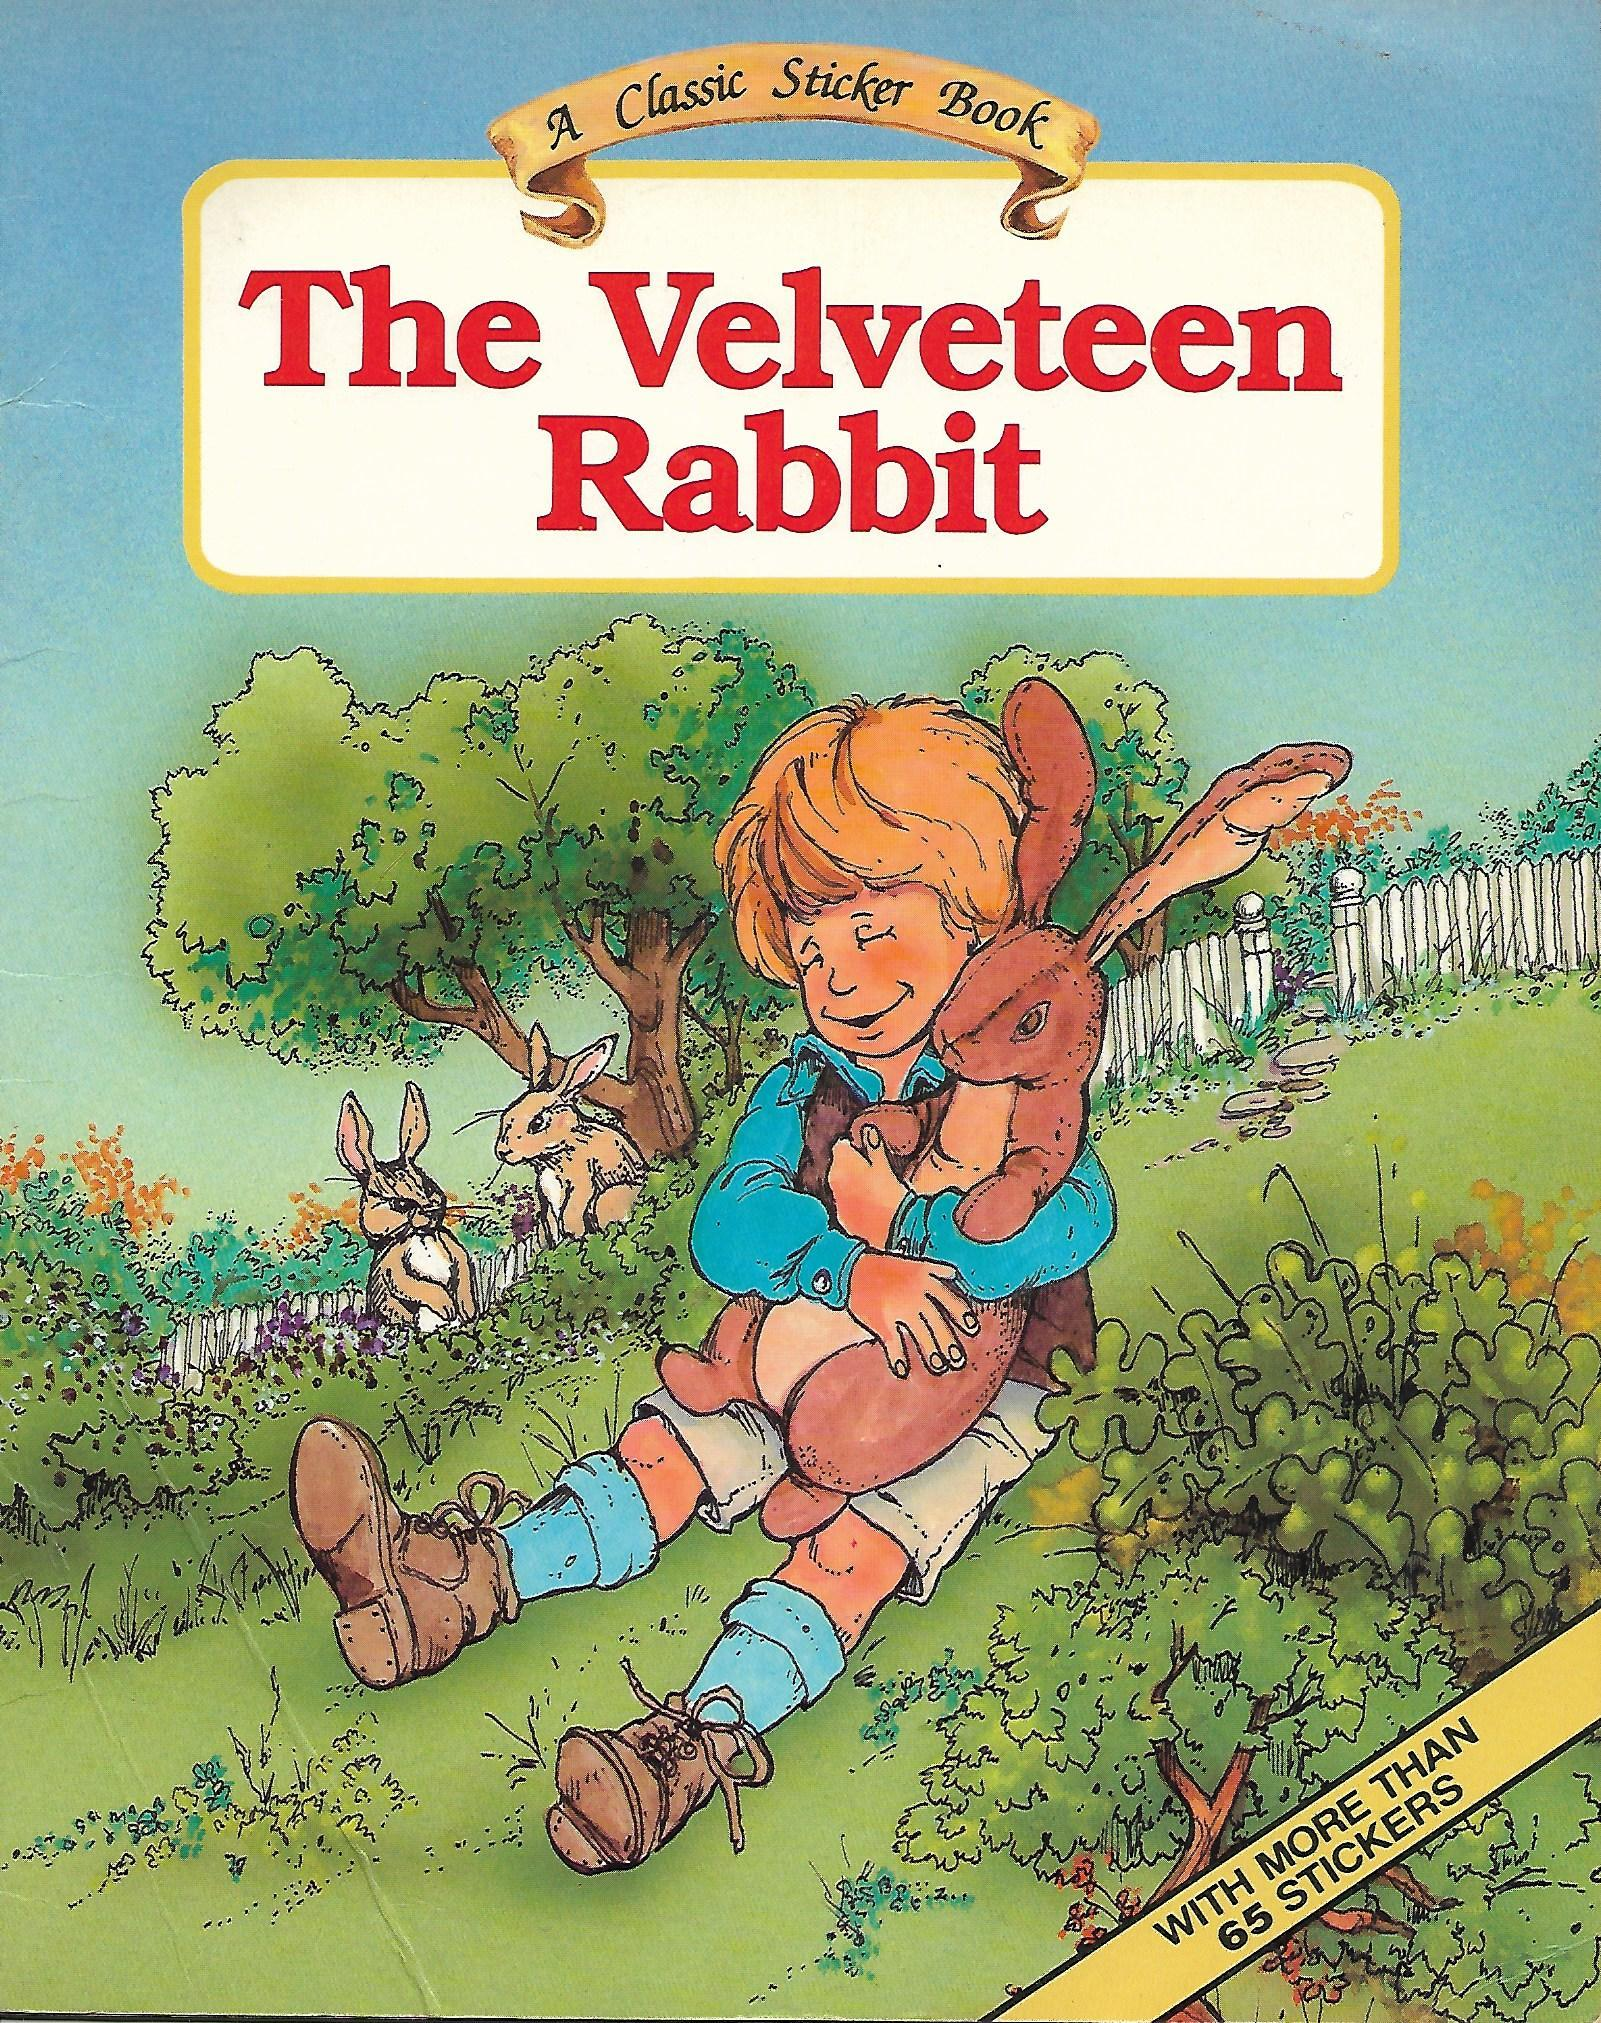 The Velveteen Rabbit (A Classic Sticker Book)